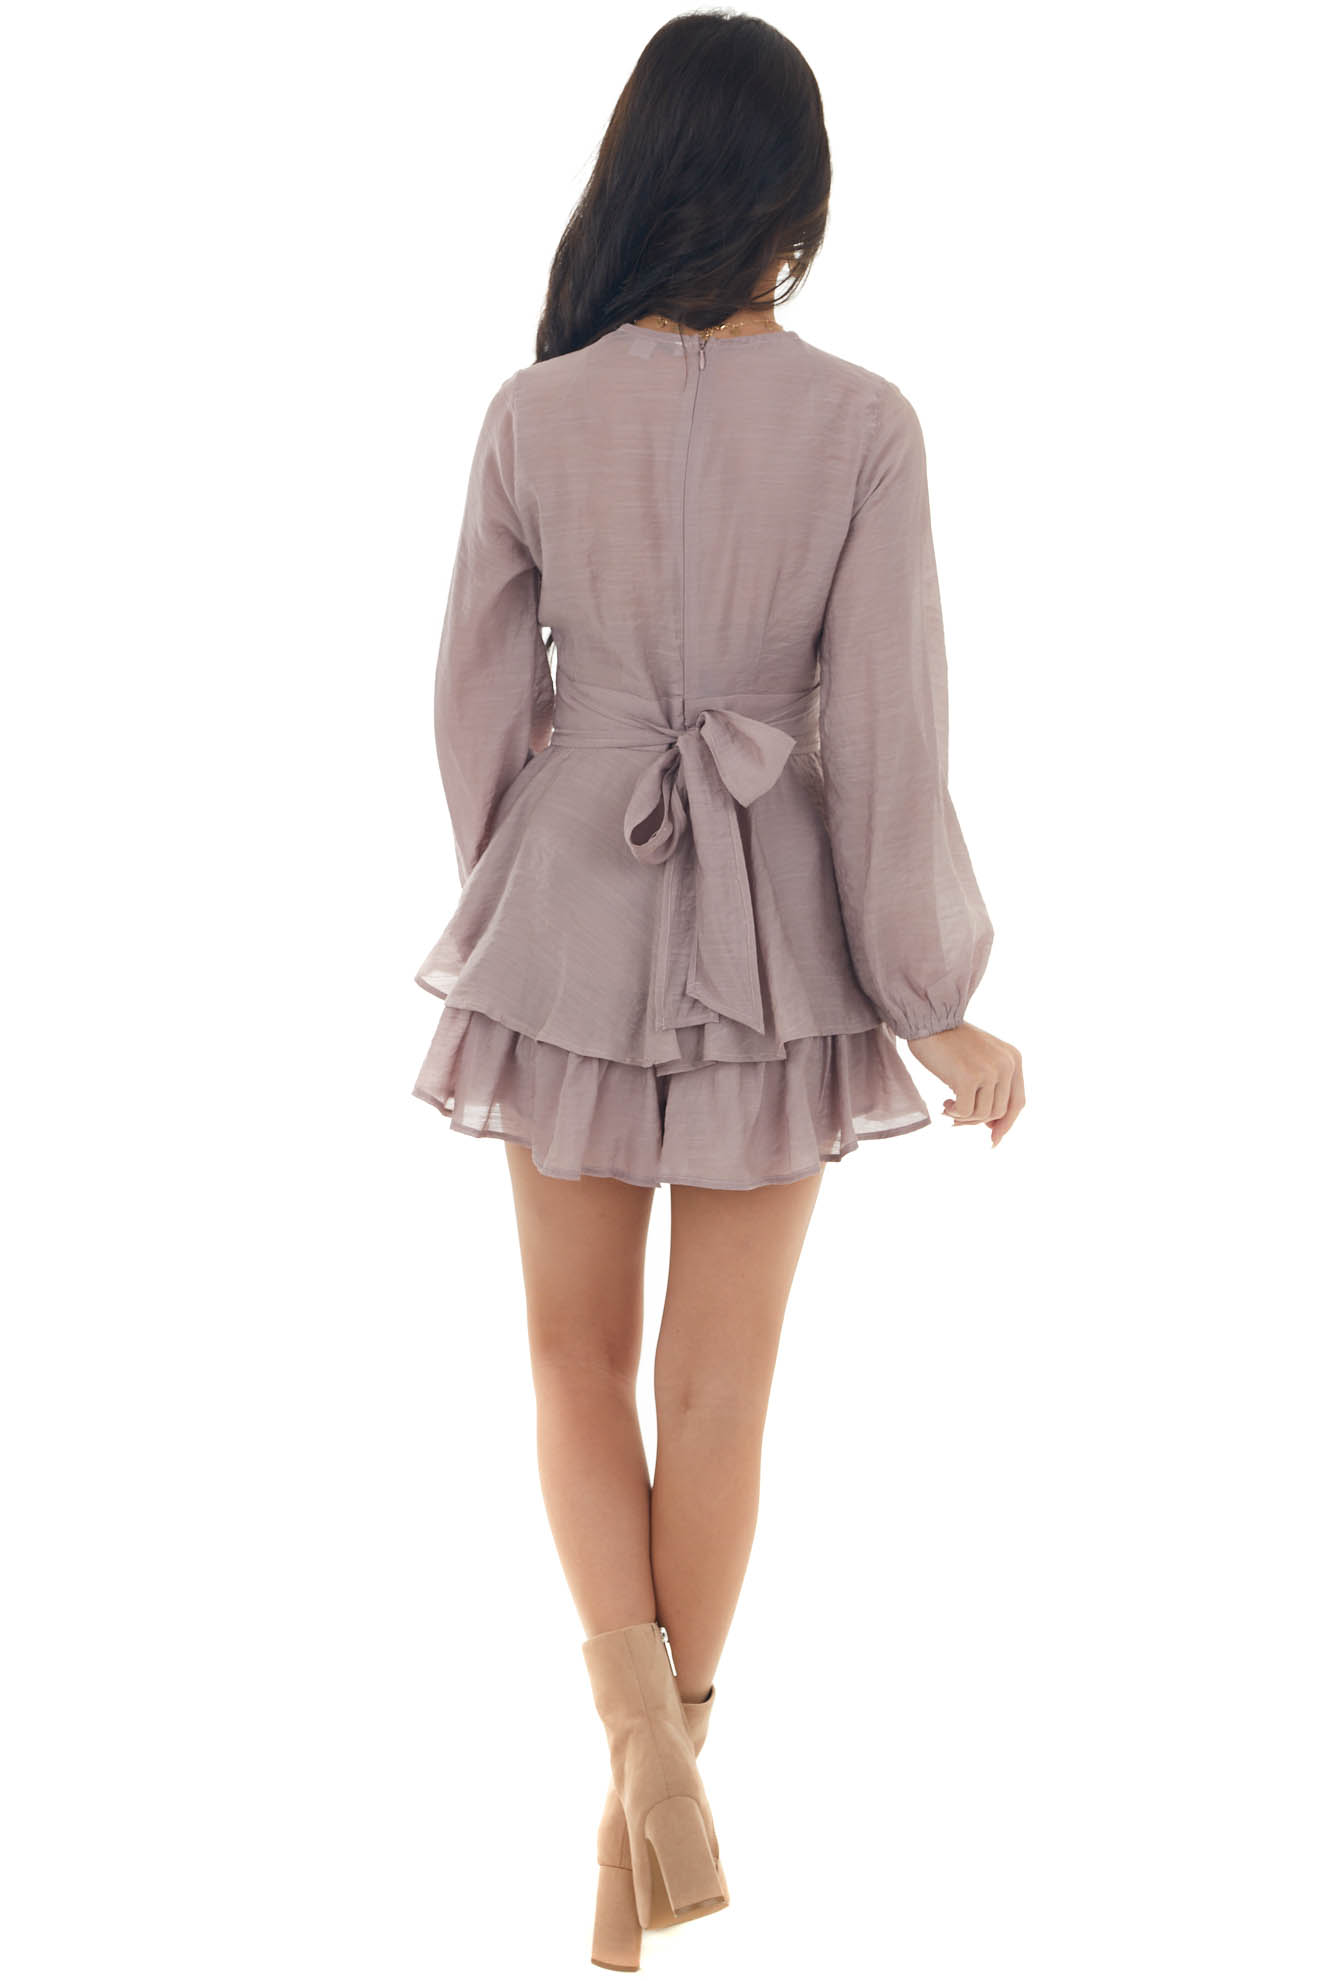 Mauve Tiered Overlay Romper with Waist Tie